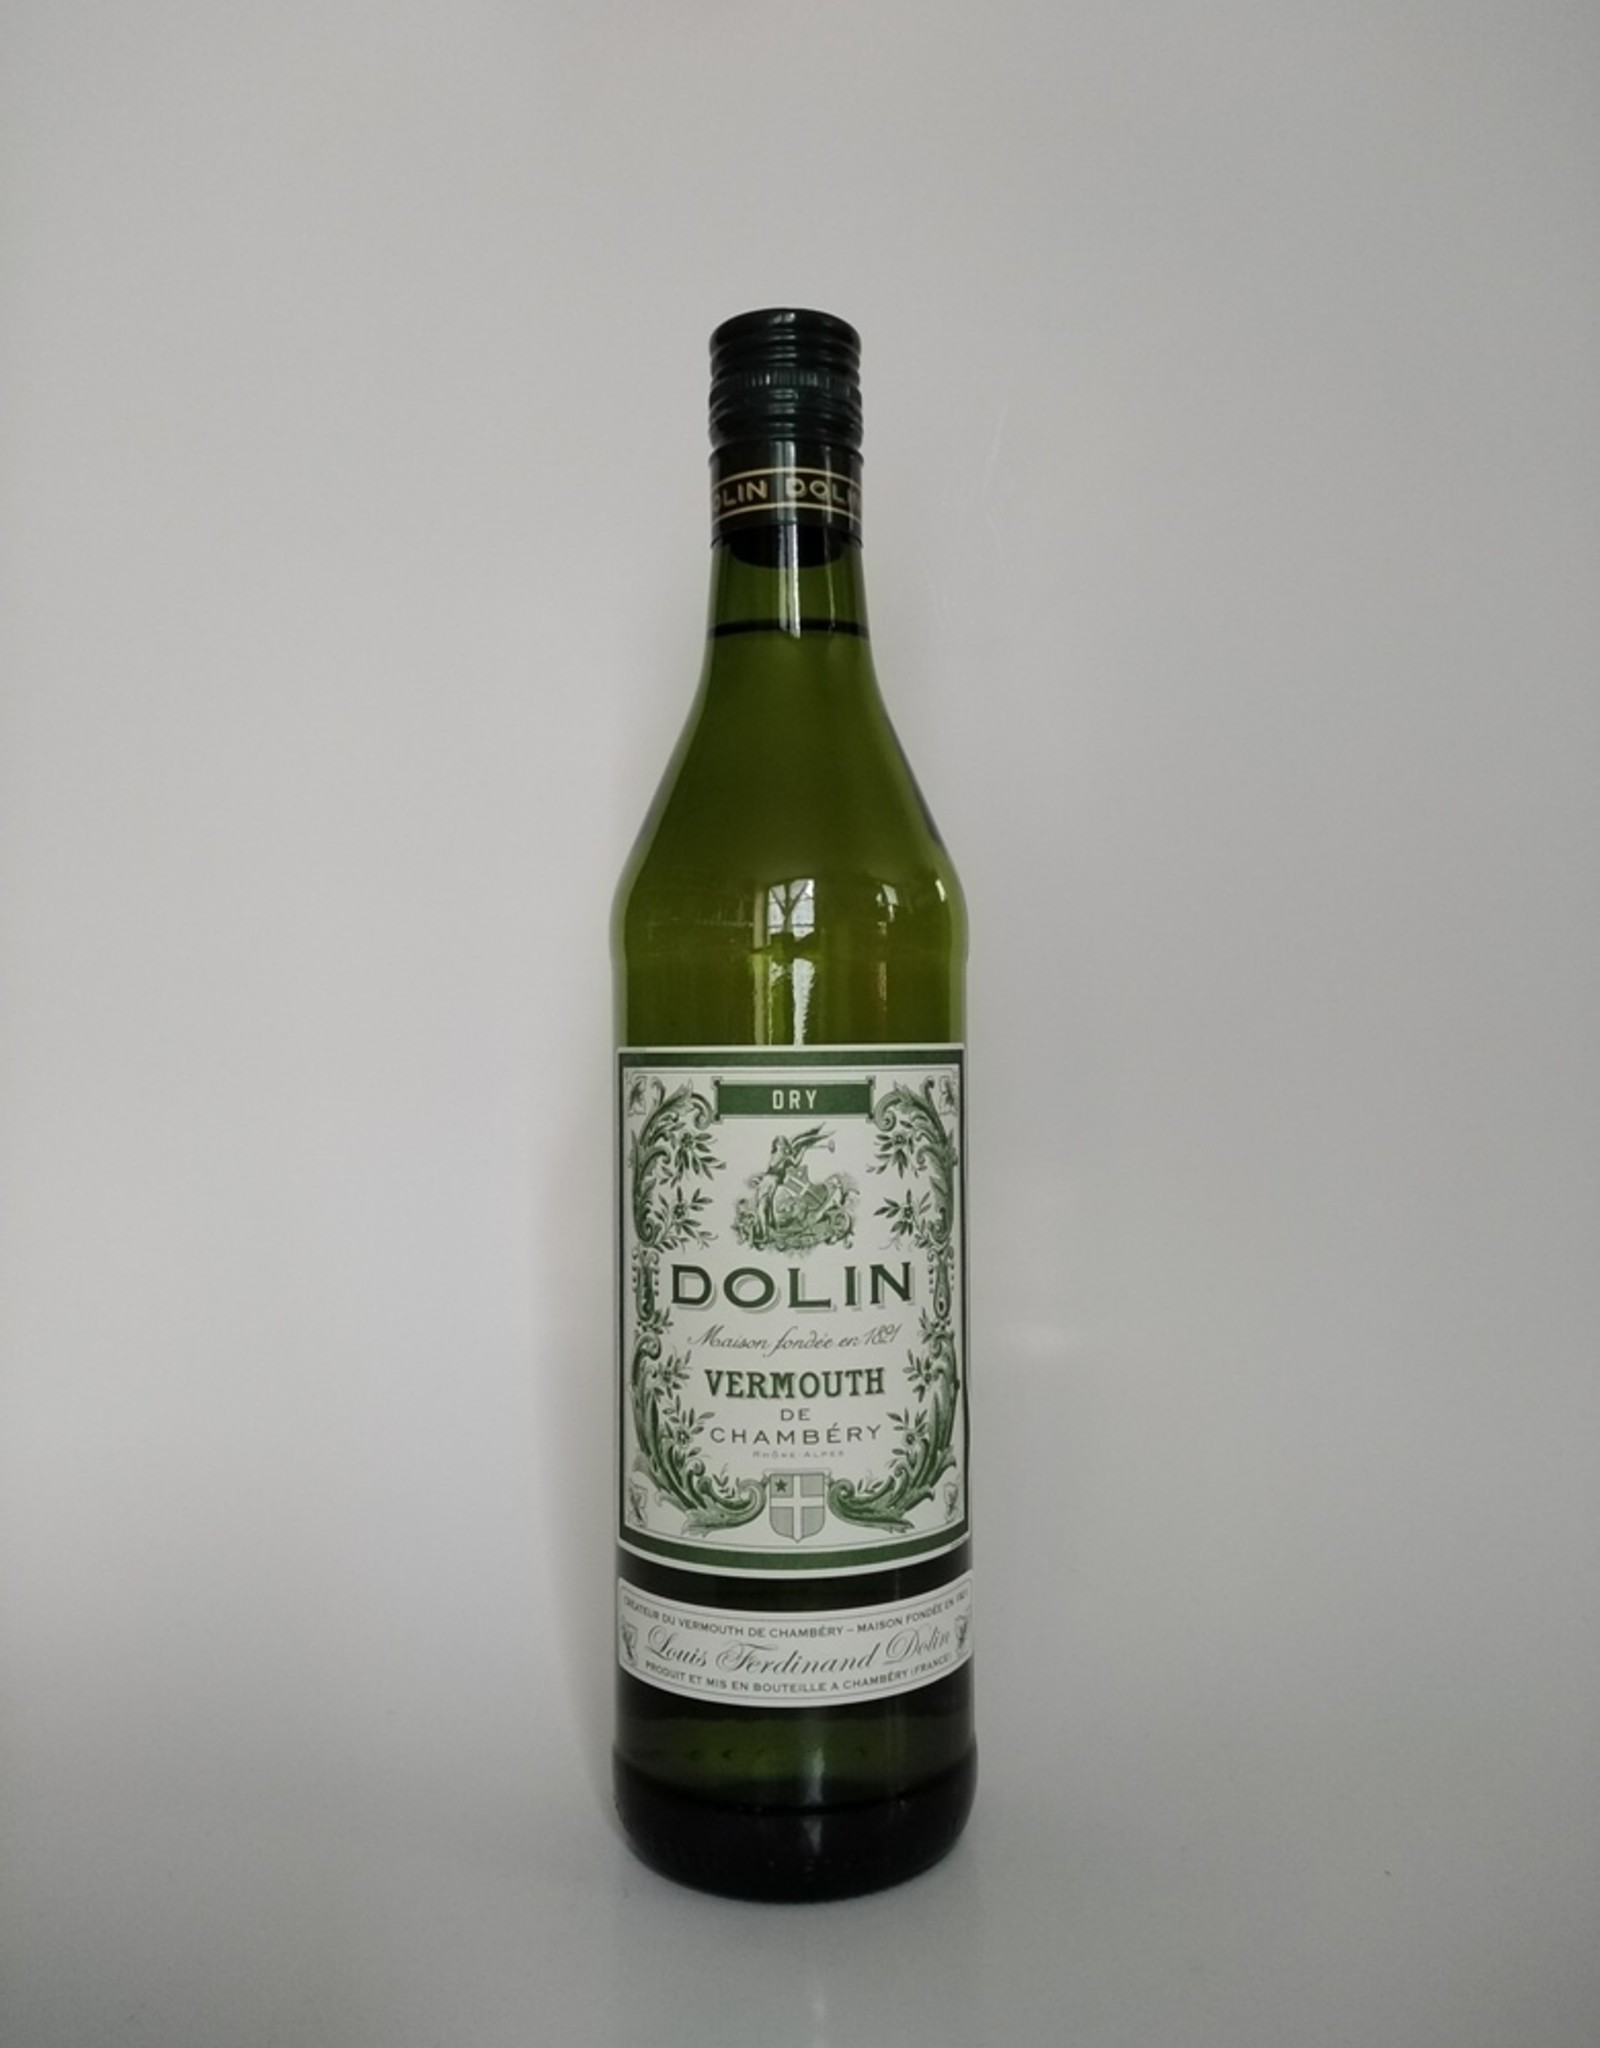 Dolin Vermouth Dry - Dolin